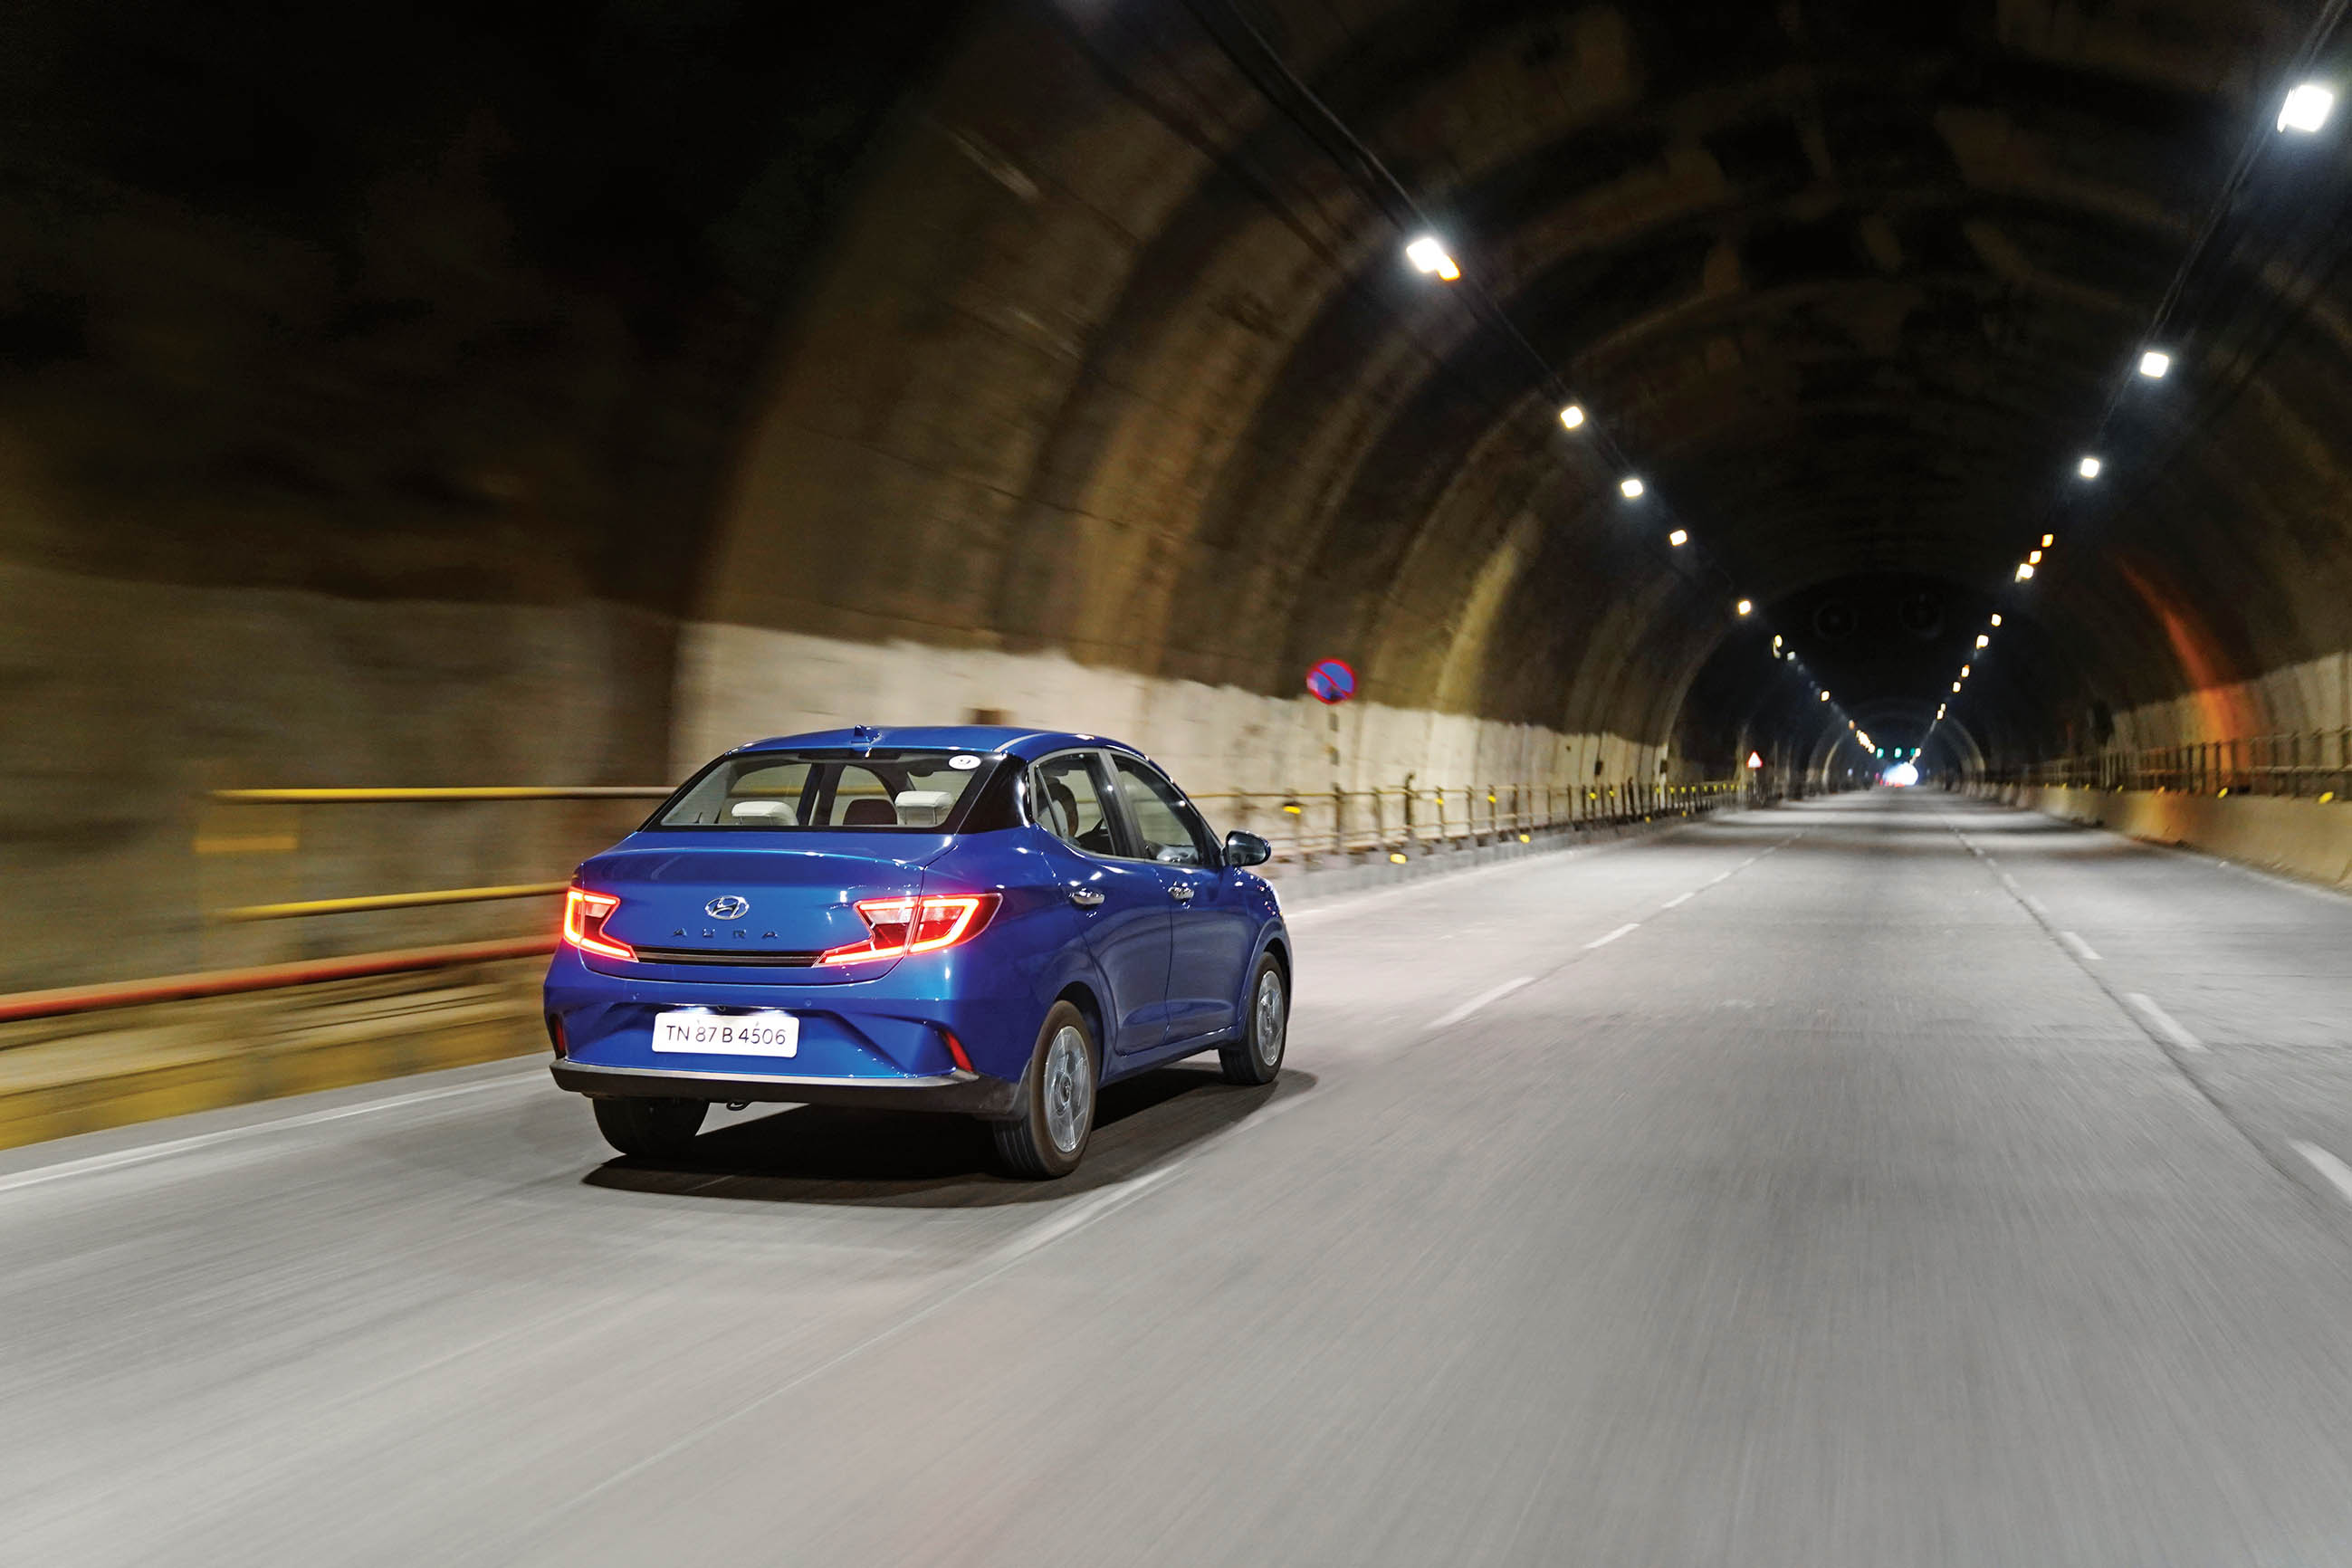 road test of the Hyundai Aura driving through a tunnel in India